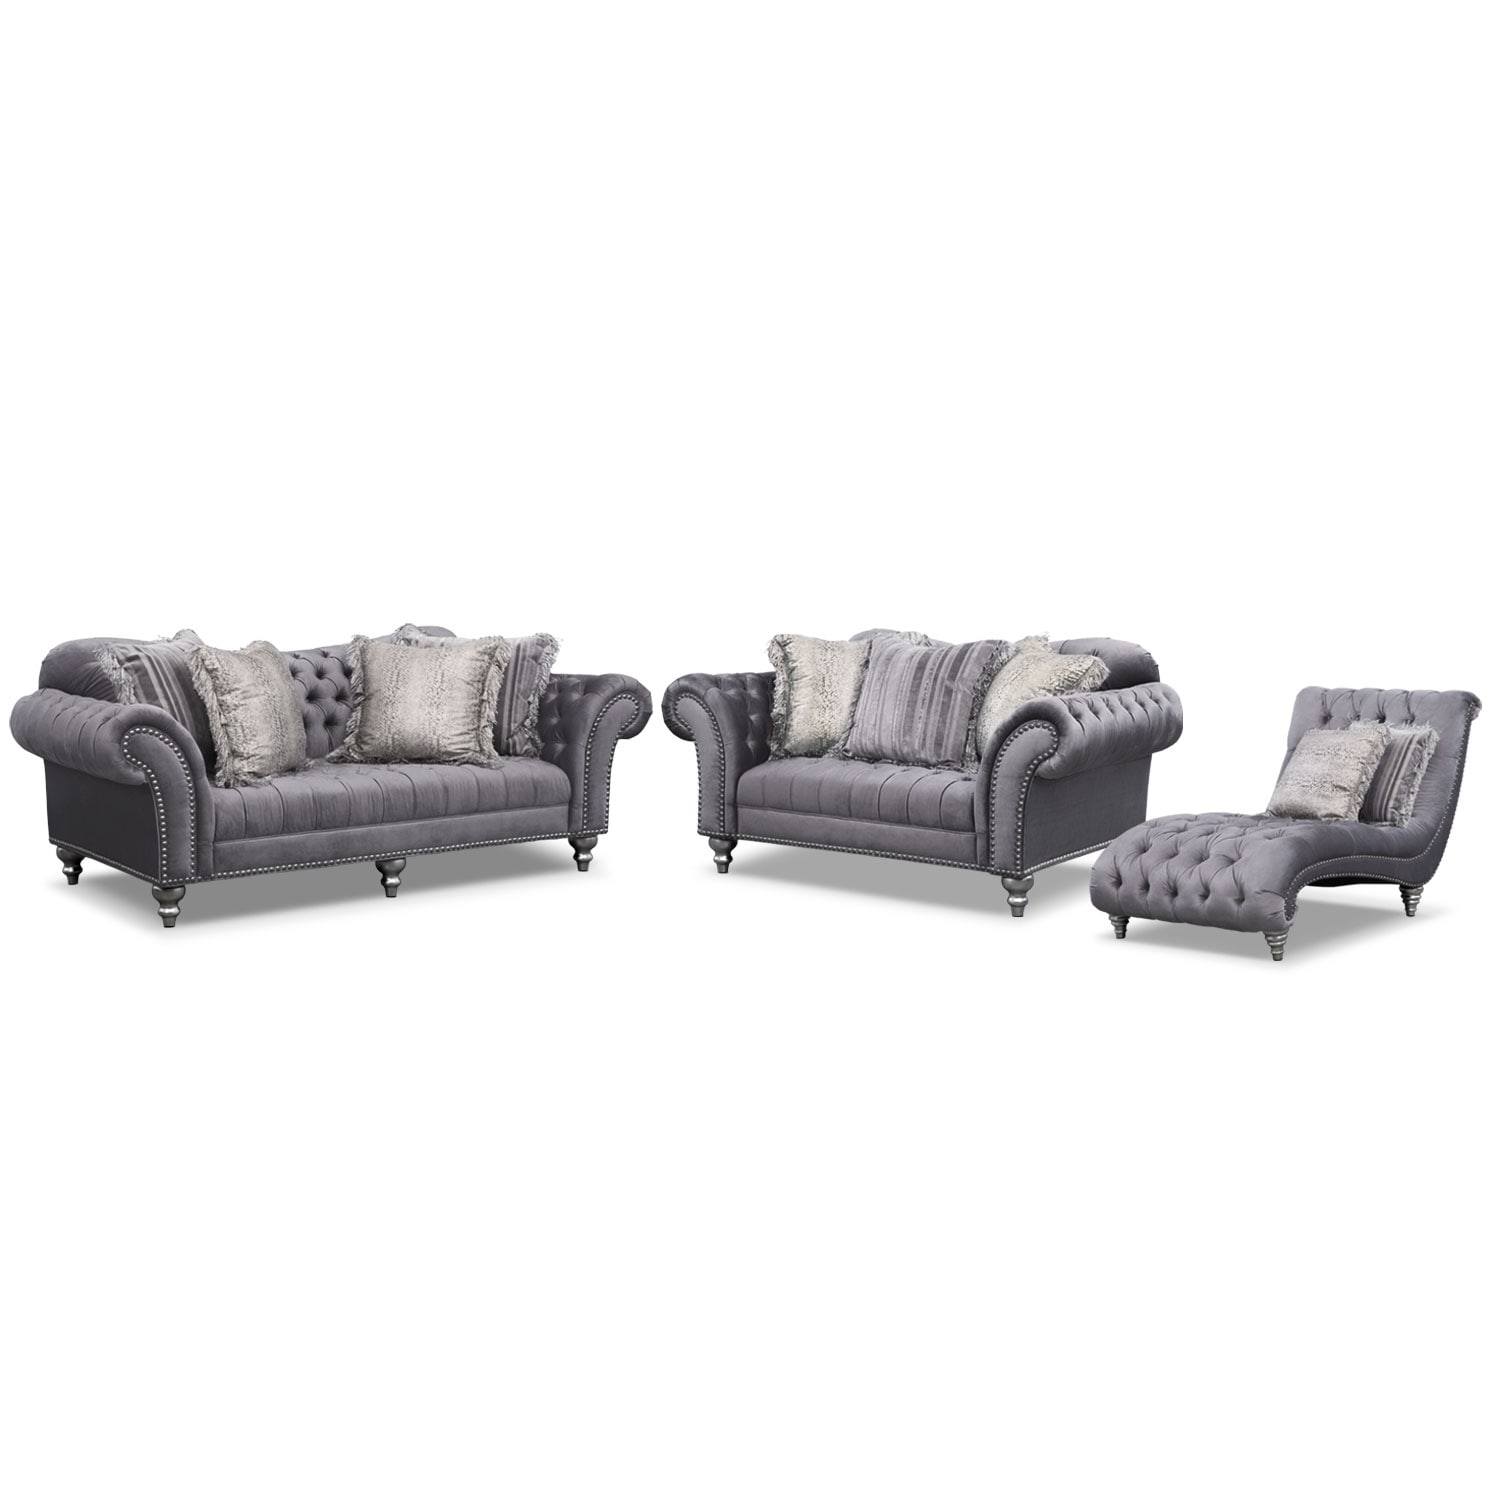 Brittney sofa loveseat and chaise set gray american for American signature furniture commercial chaise